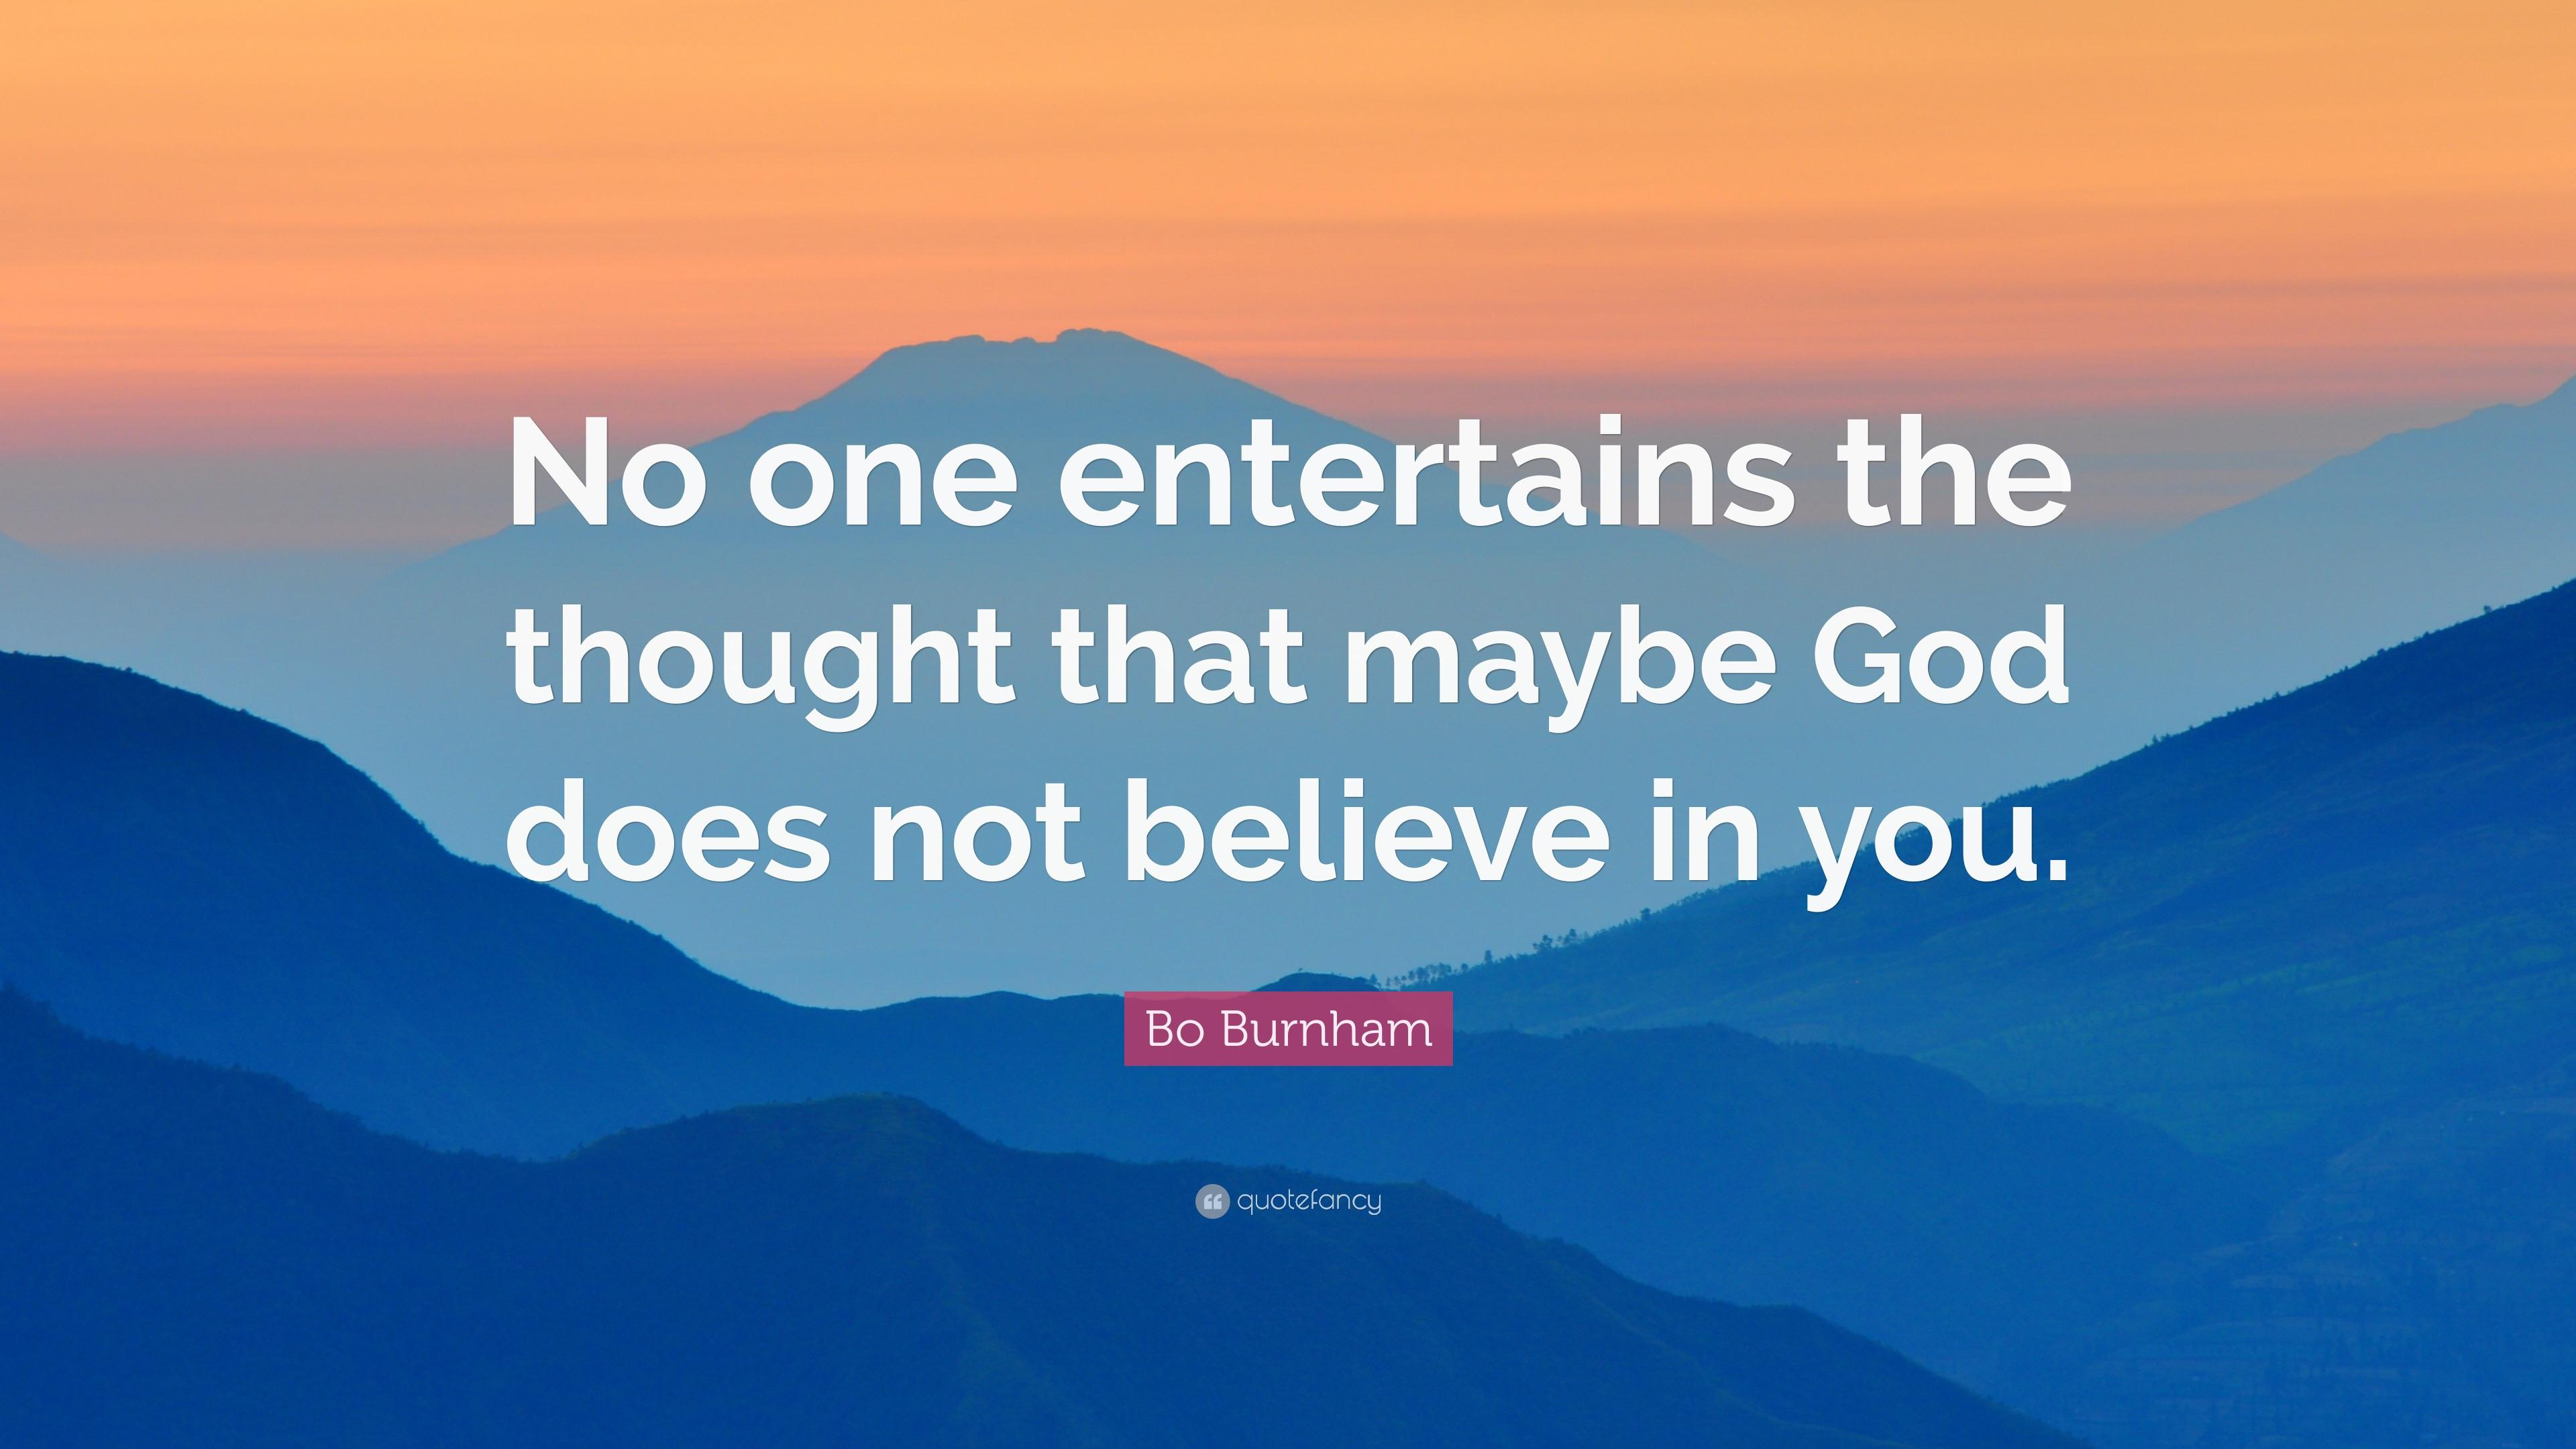 """No one entertains the thought that maybe God does not believe in you"" [3840×2160]"